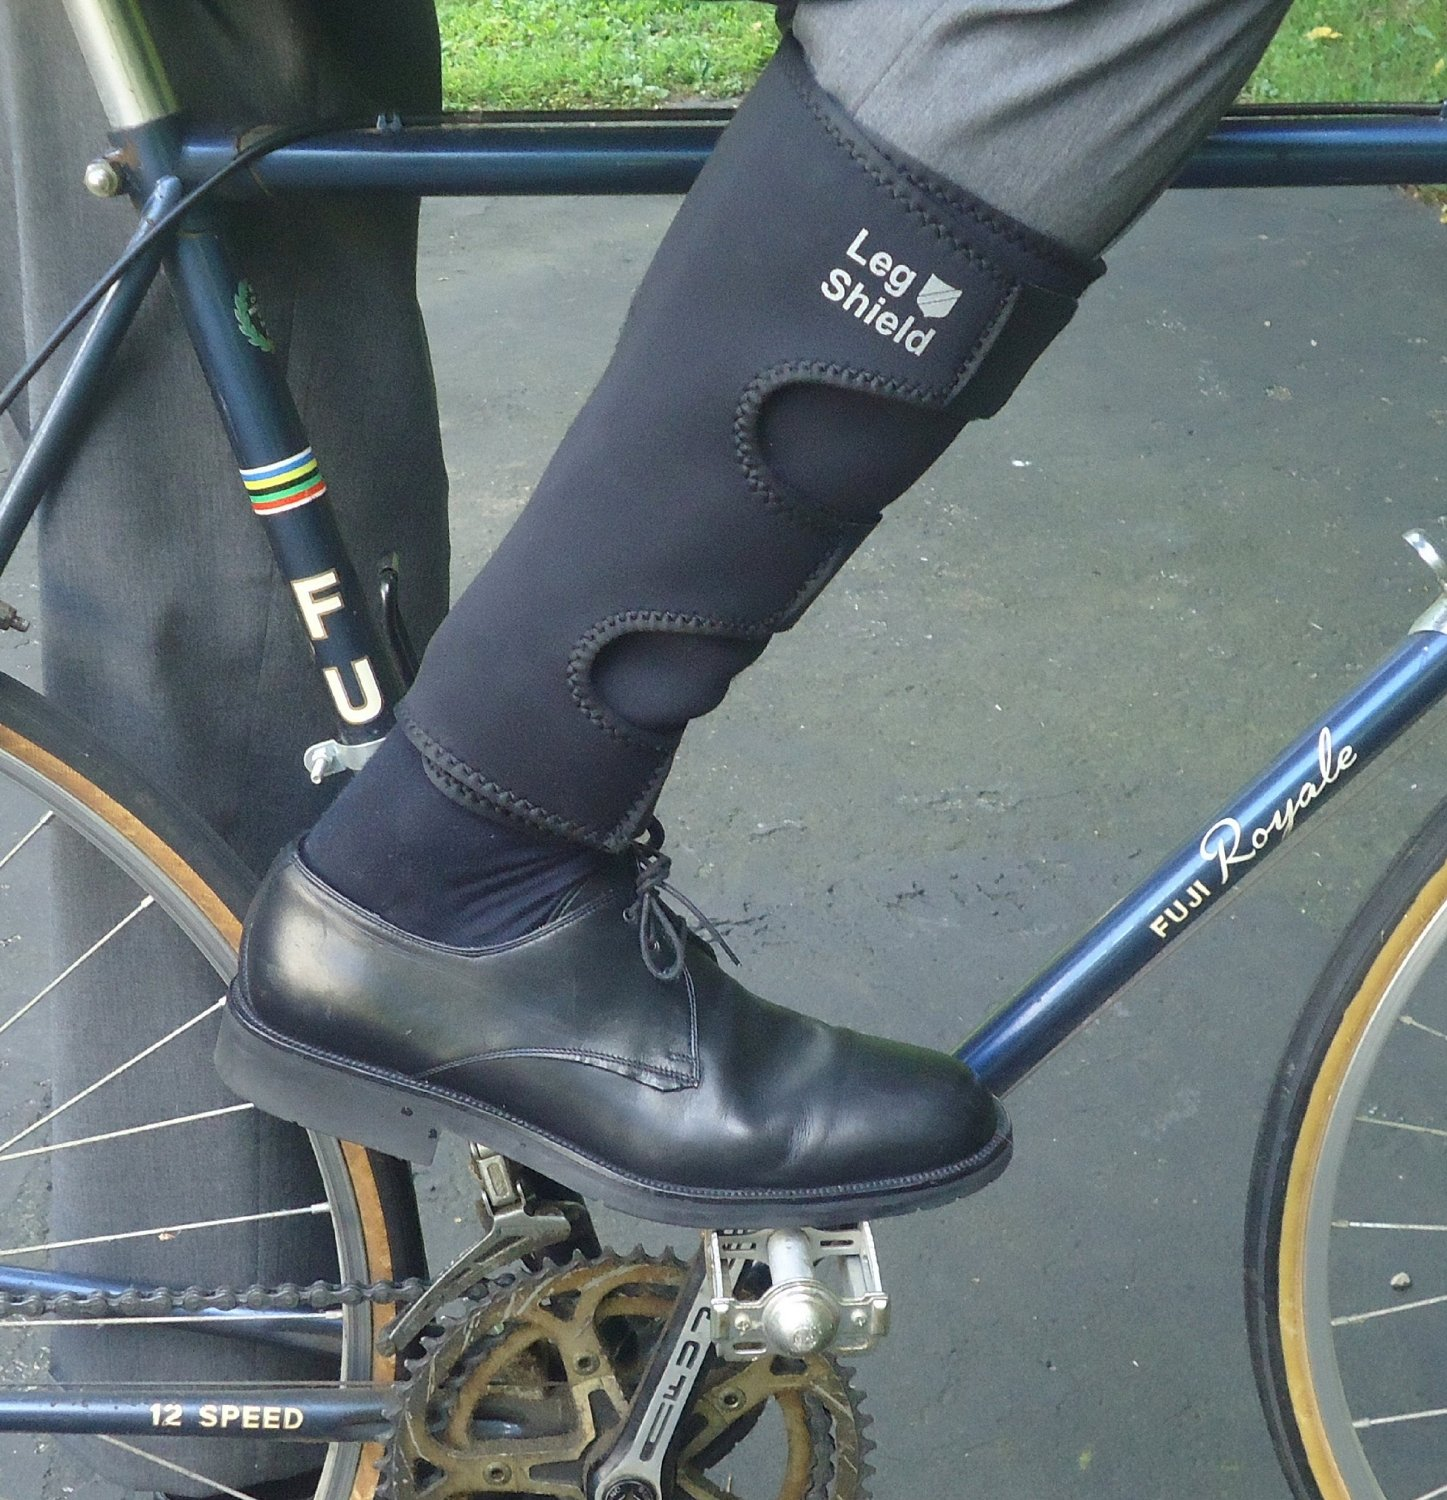 Straps And Gaiters To Keep Your Pants And Ankles Clean Bicycling